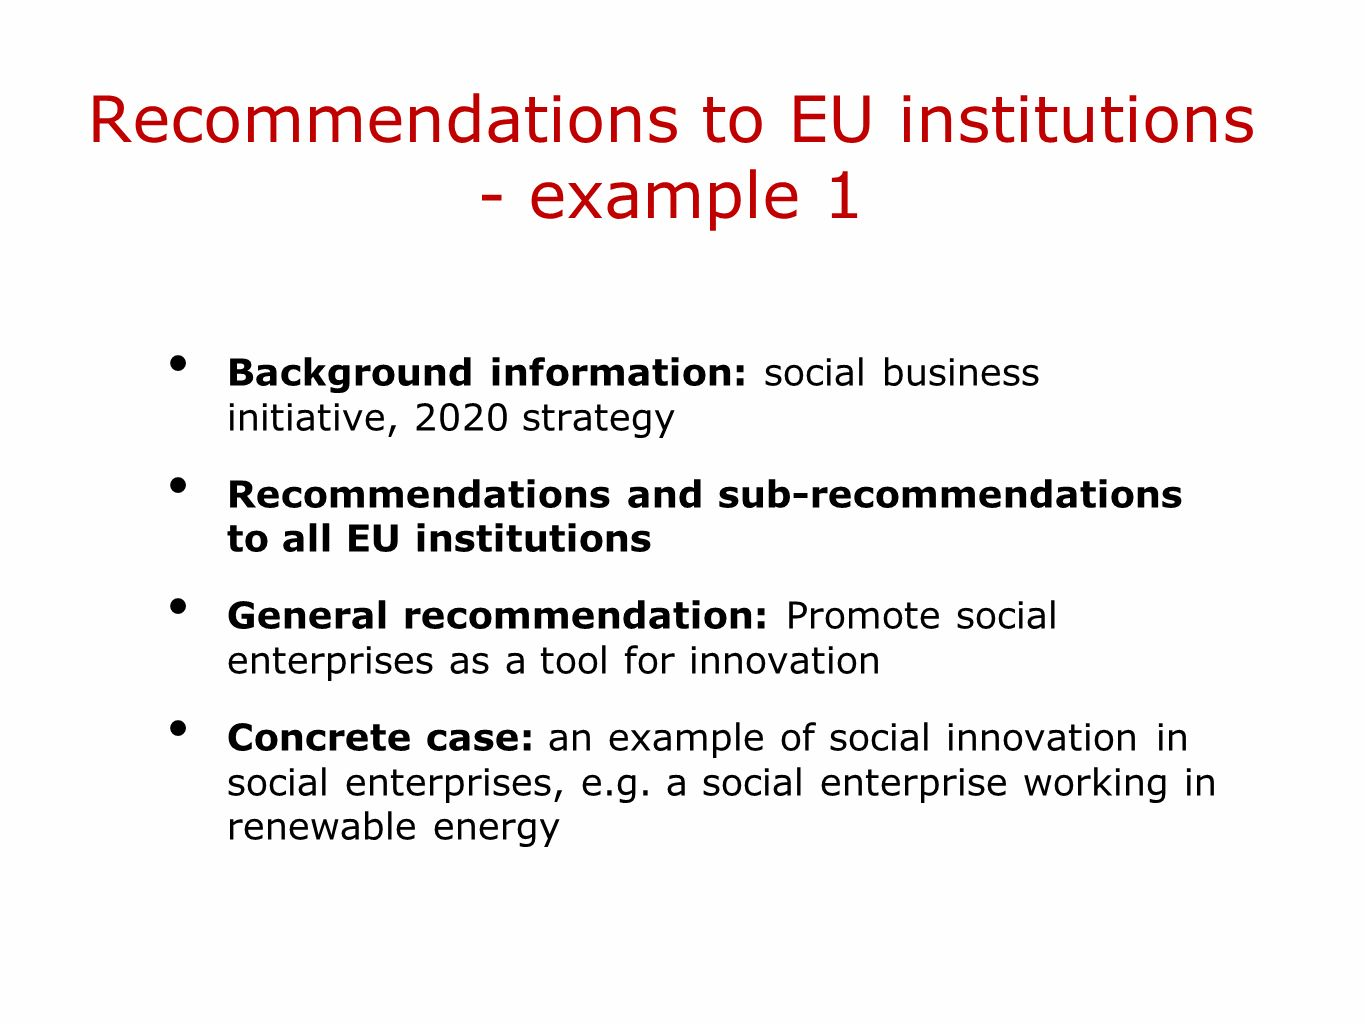 Recommendations to EU institutions - example 1